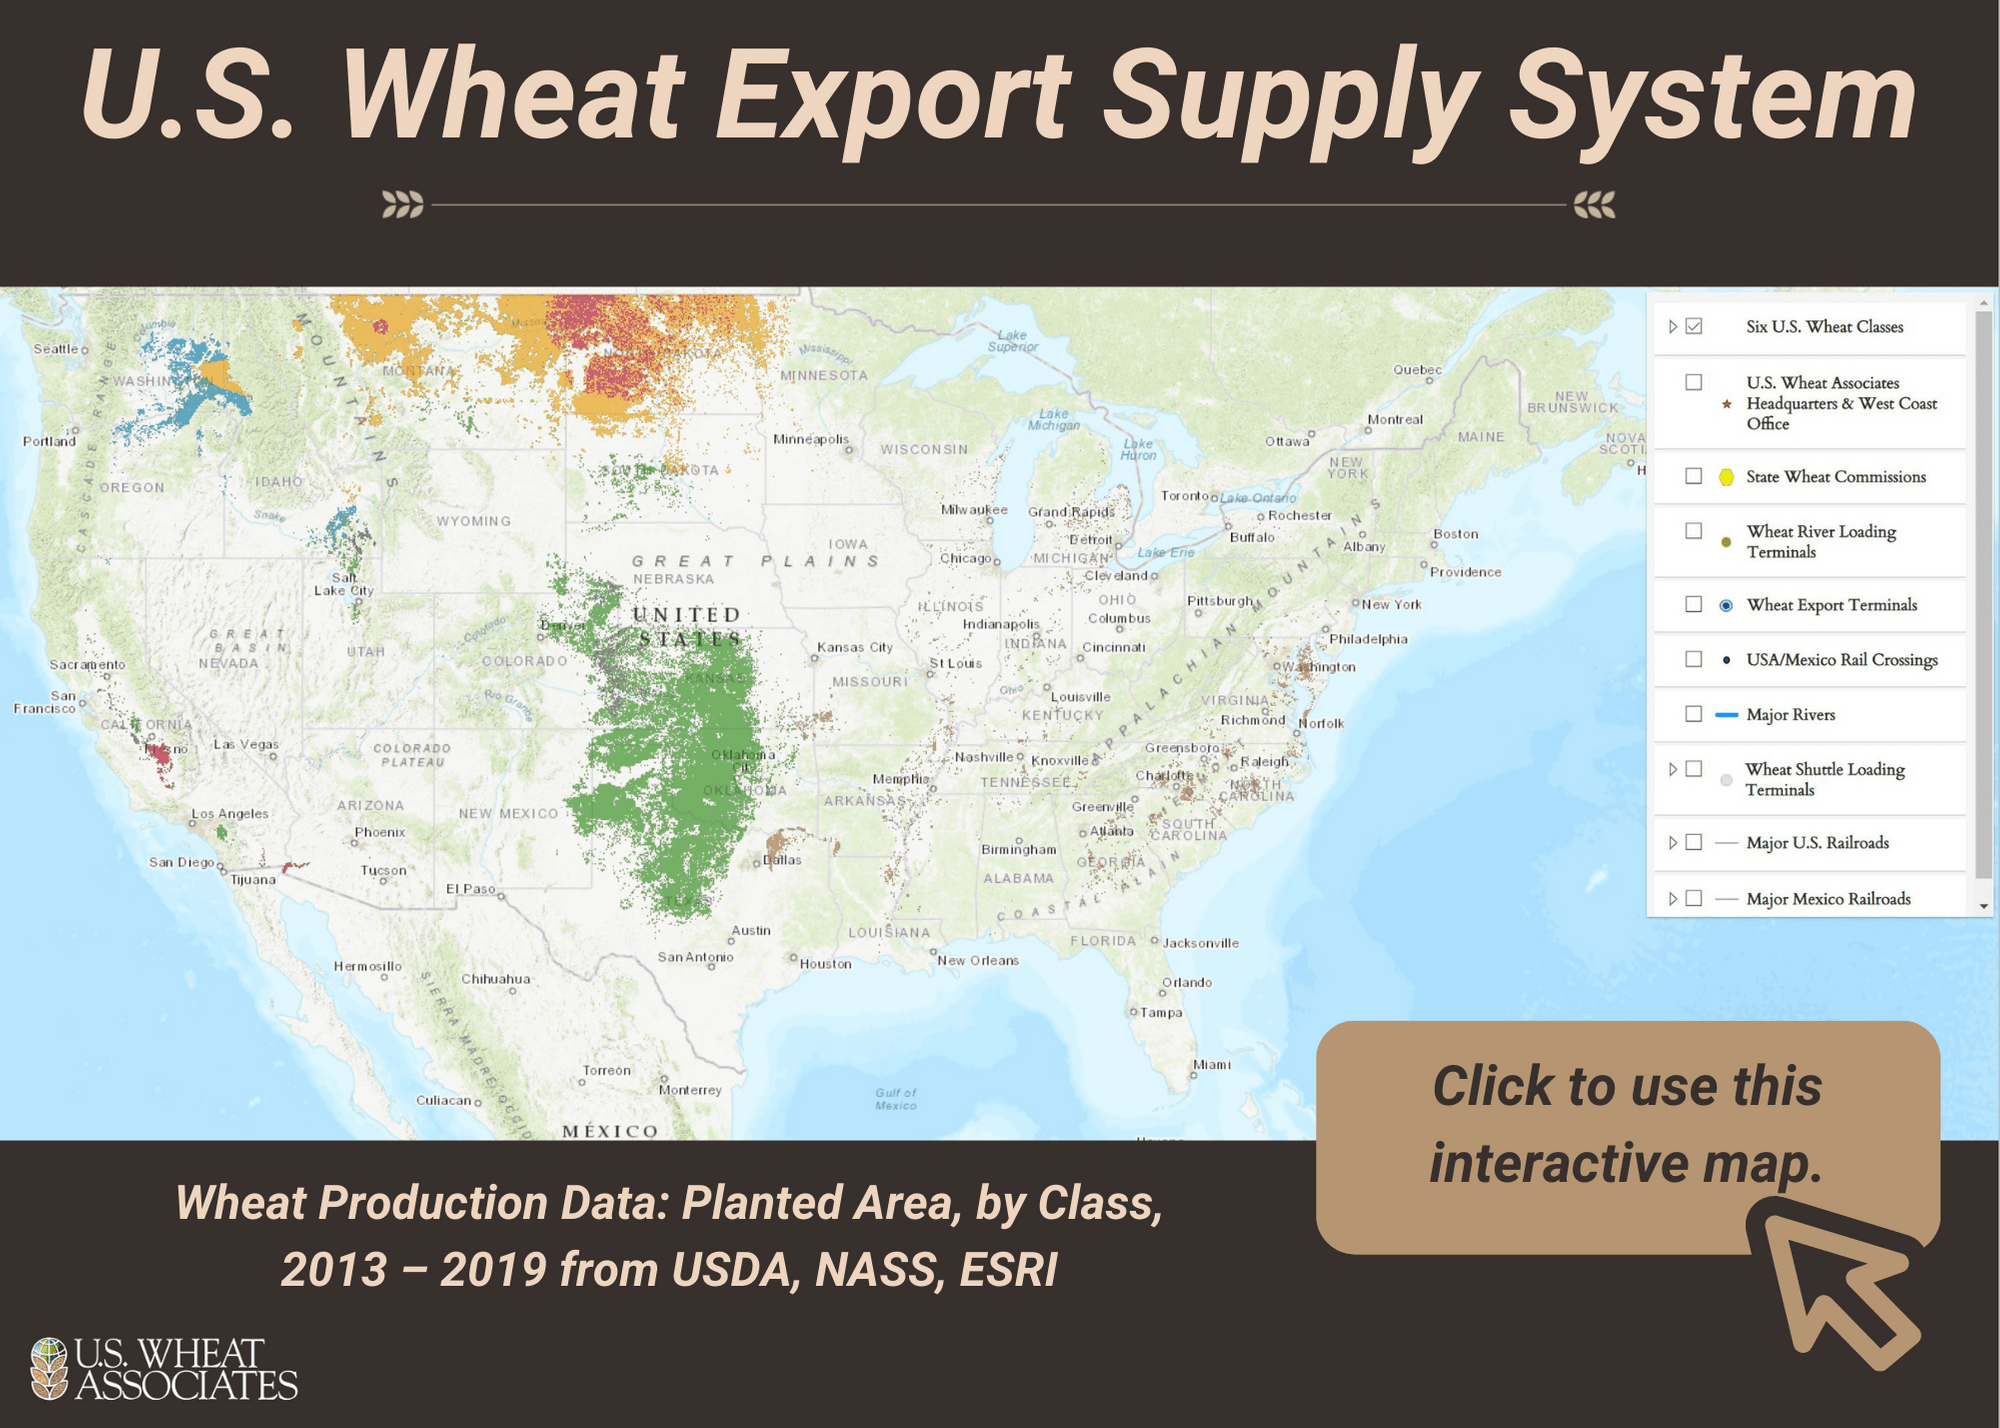 Picture of U.S. wheat export supply map.